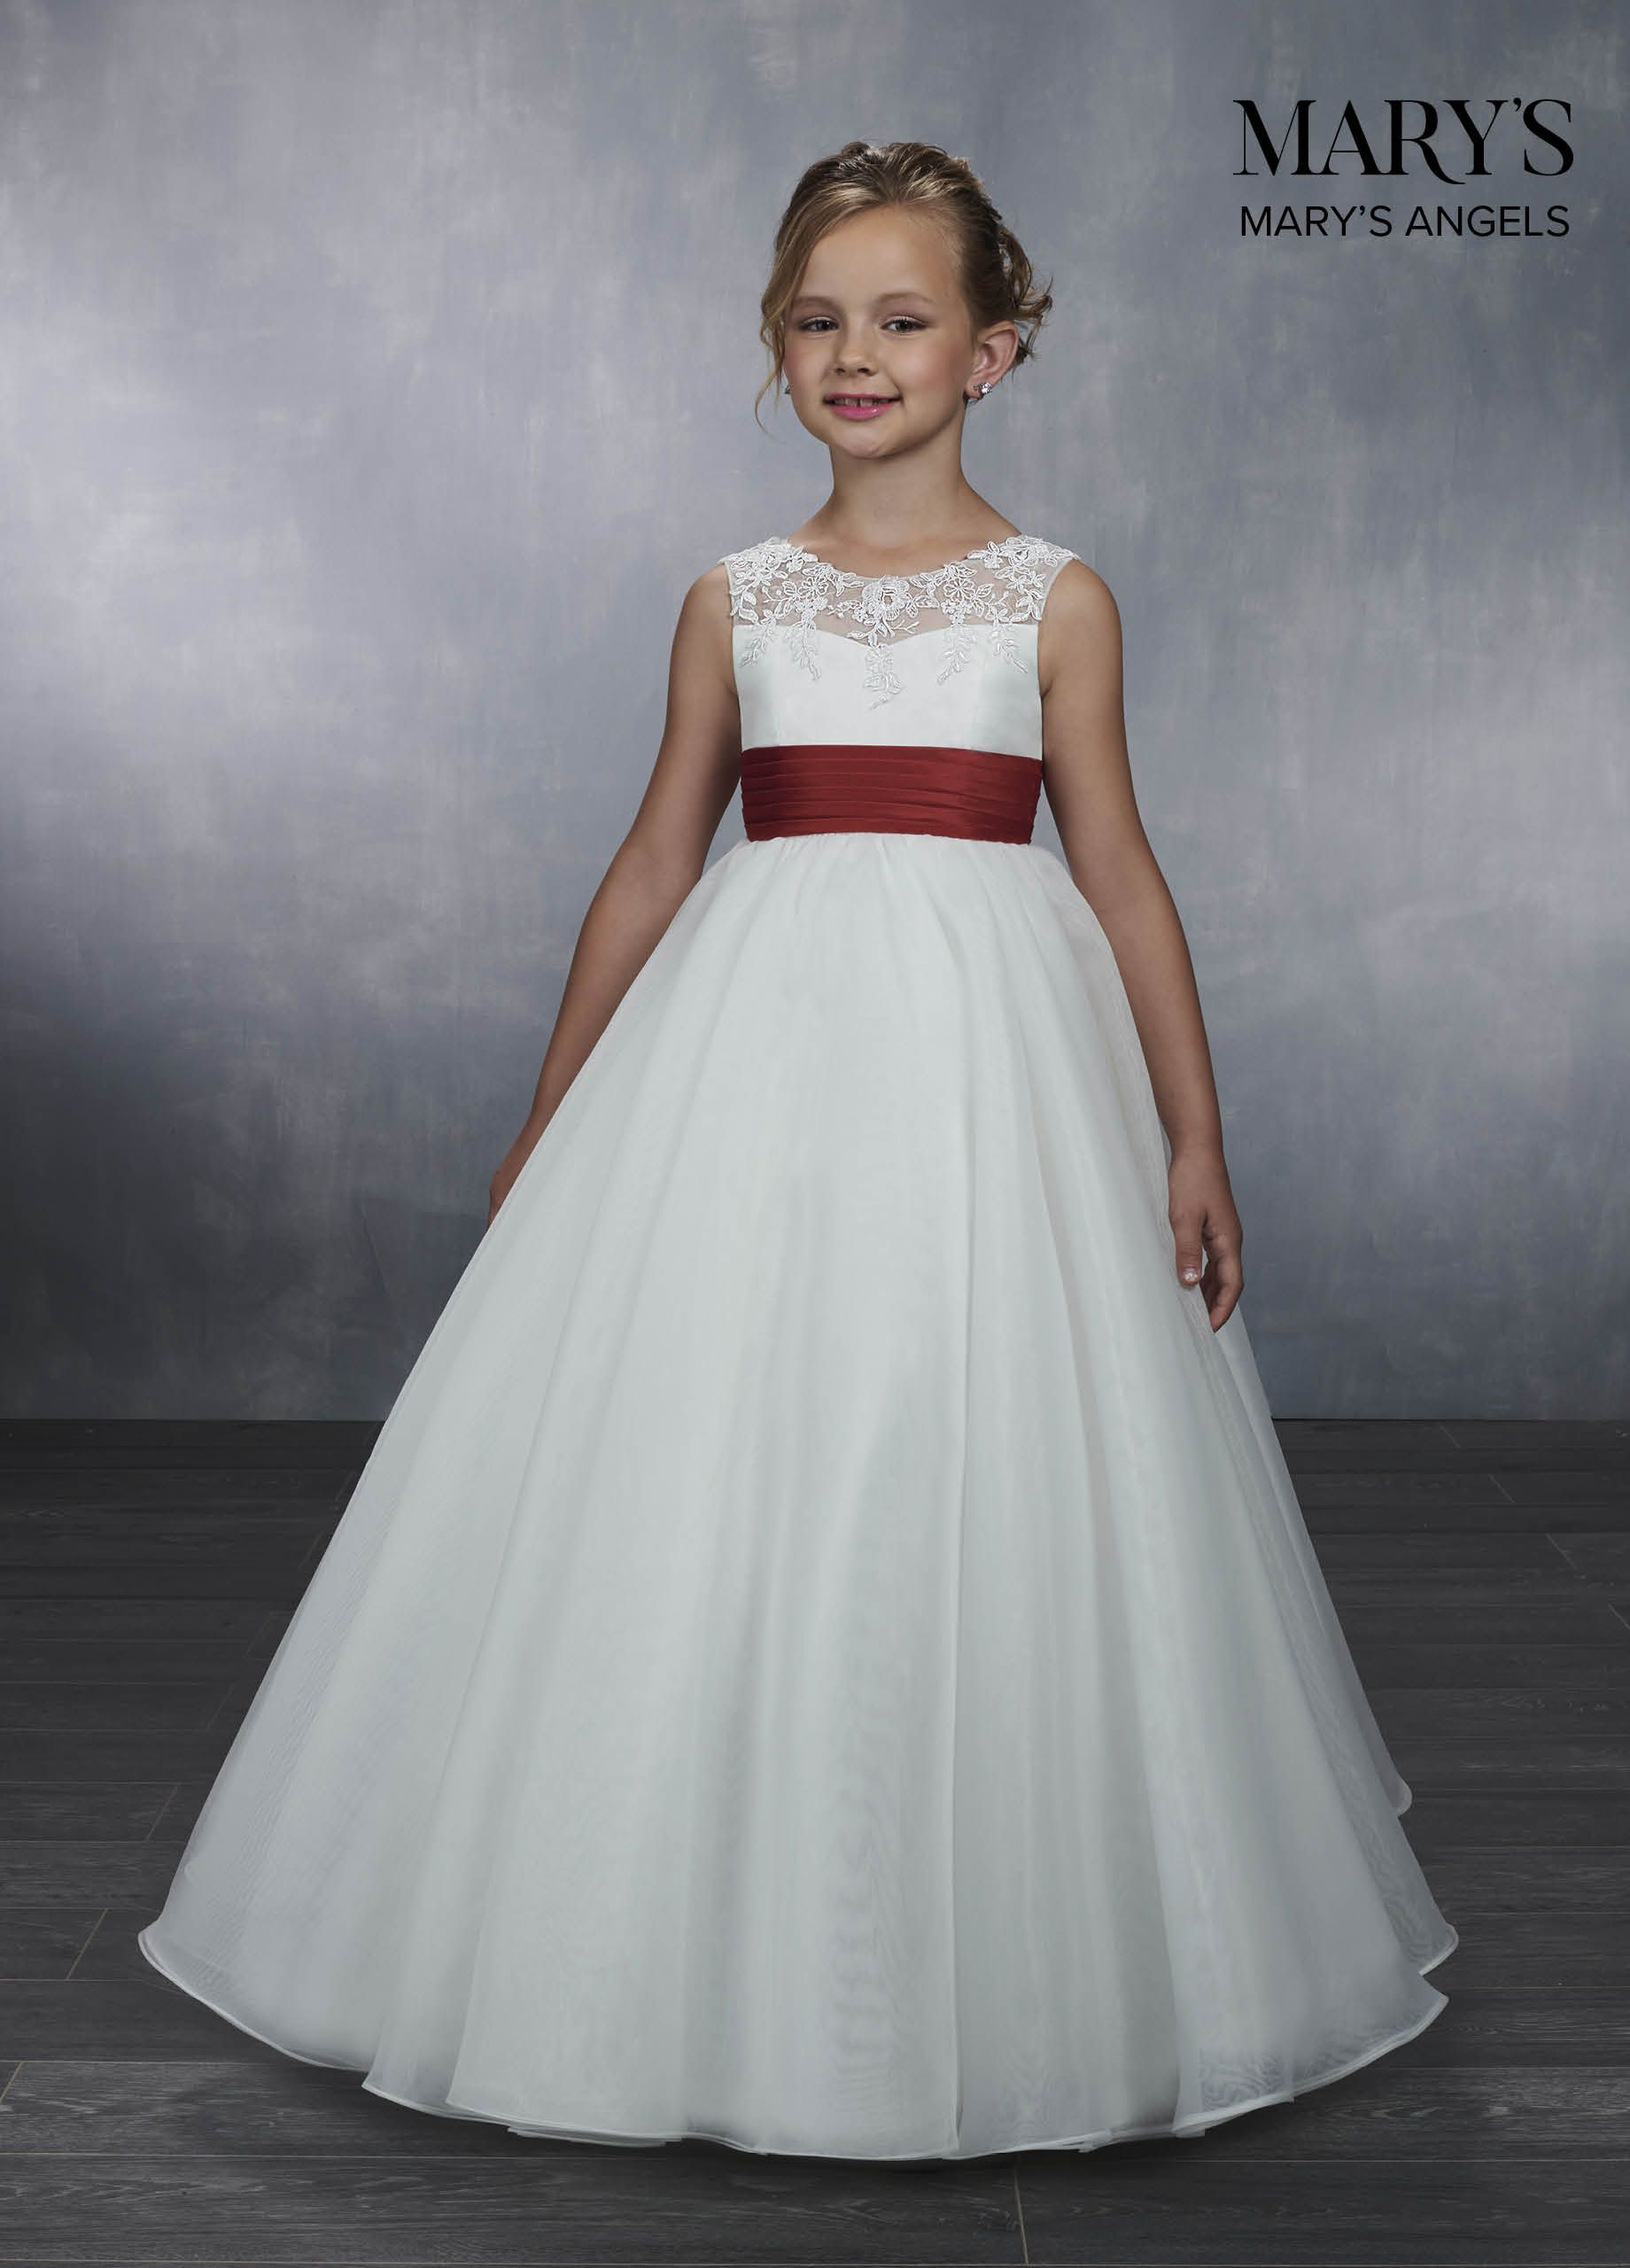 Floor length flowergirl ball gown features tulle and lace